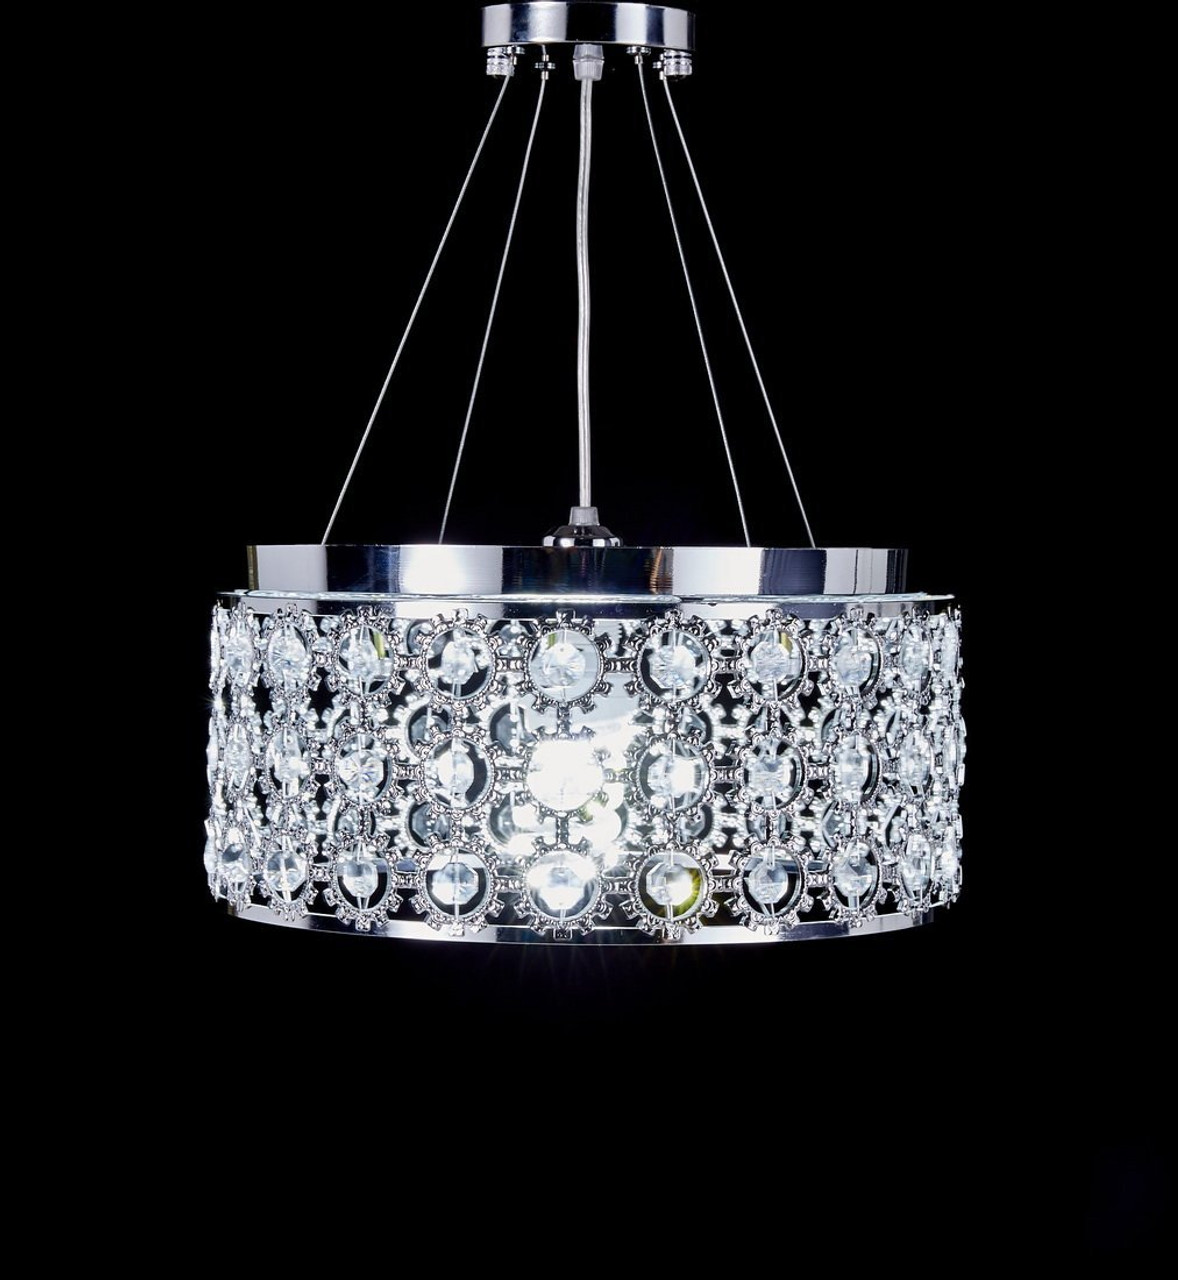 lights remote light crystal itm pendant chandelier room s living ceiling control